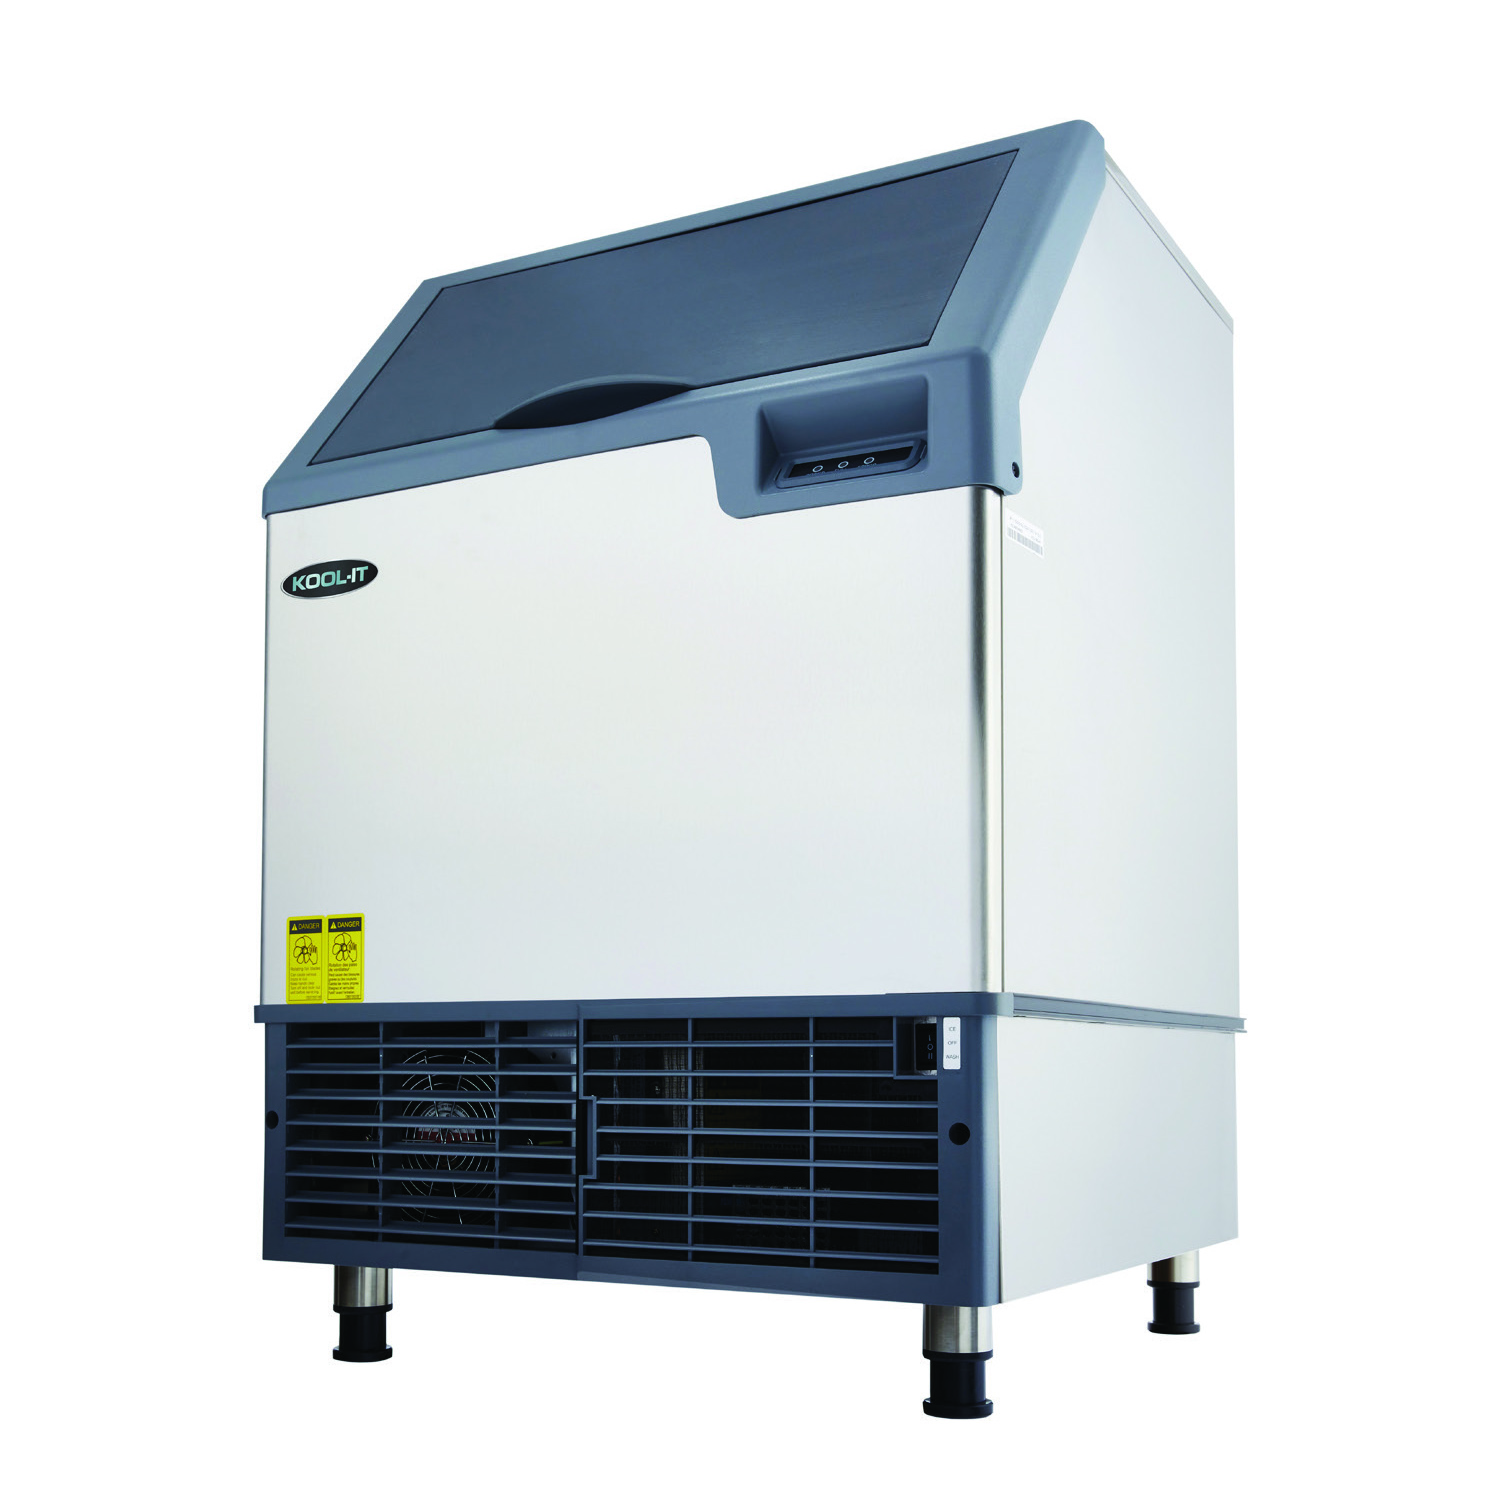 MVP KCU-180-AH ice maker with bin, cube-style